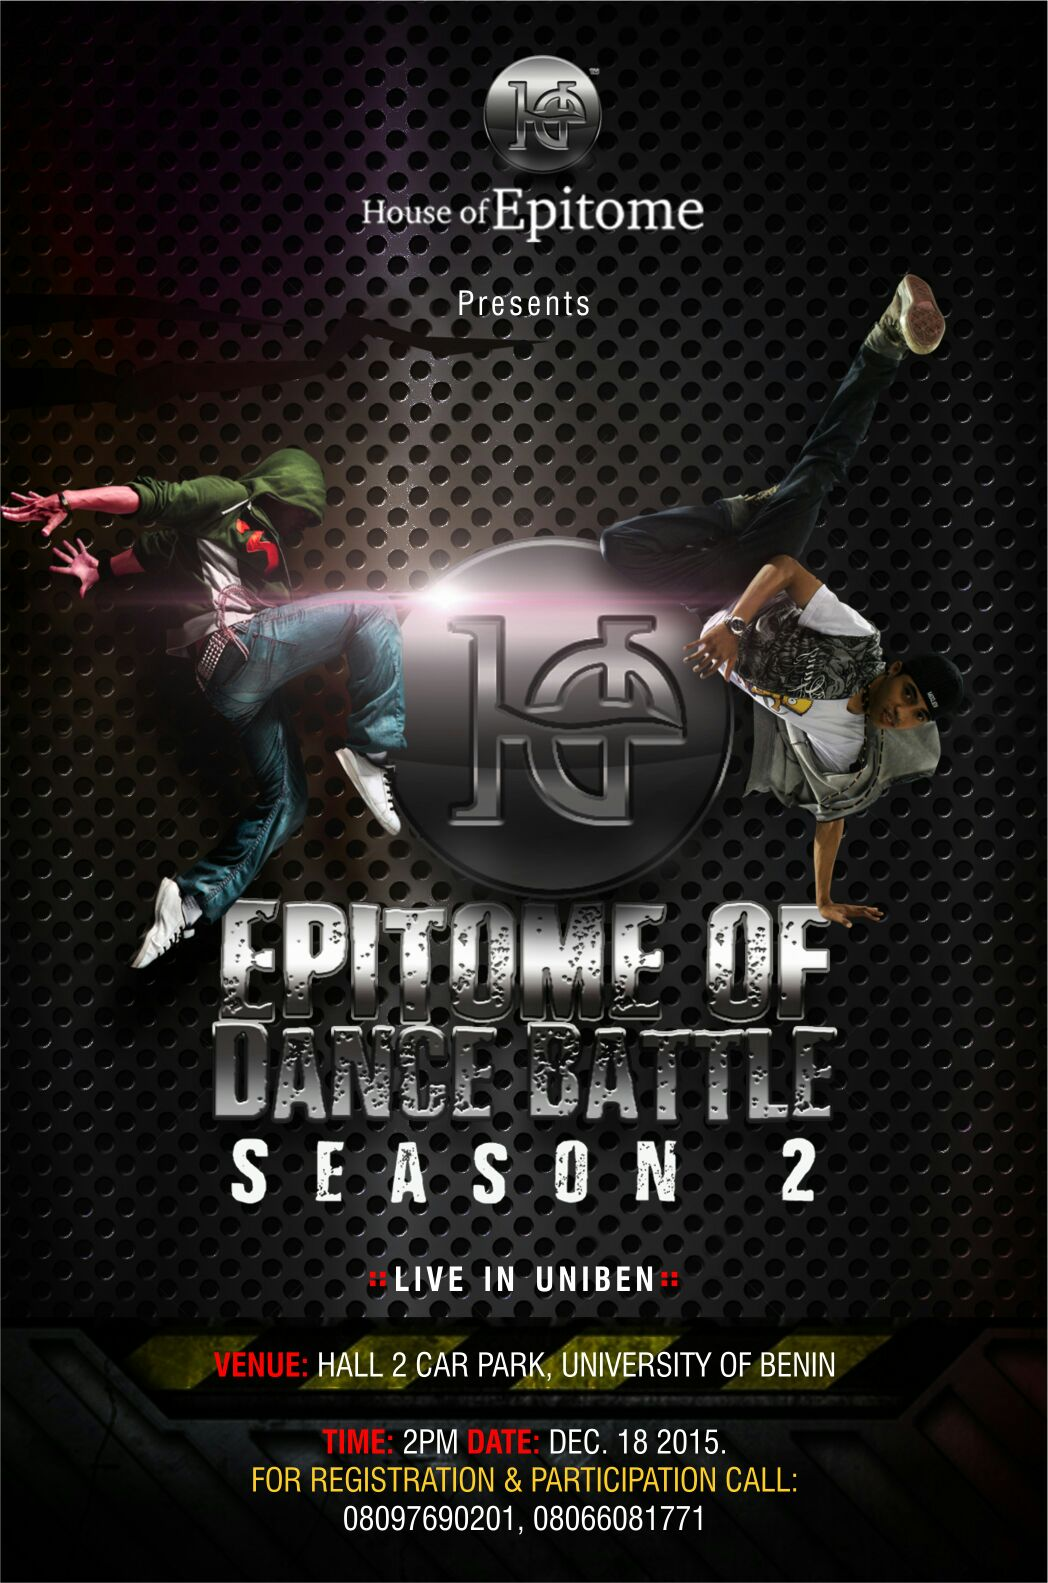 EPITOME OF DANCE BATTLE SEASON 2